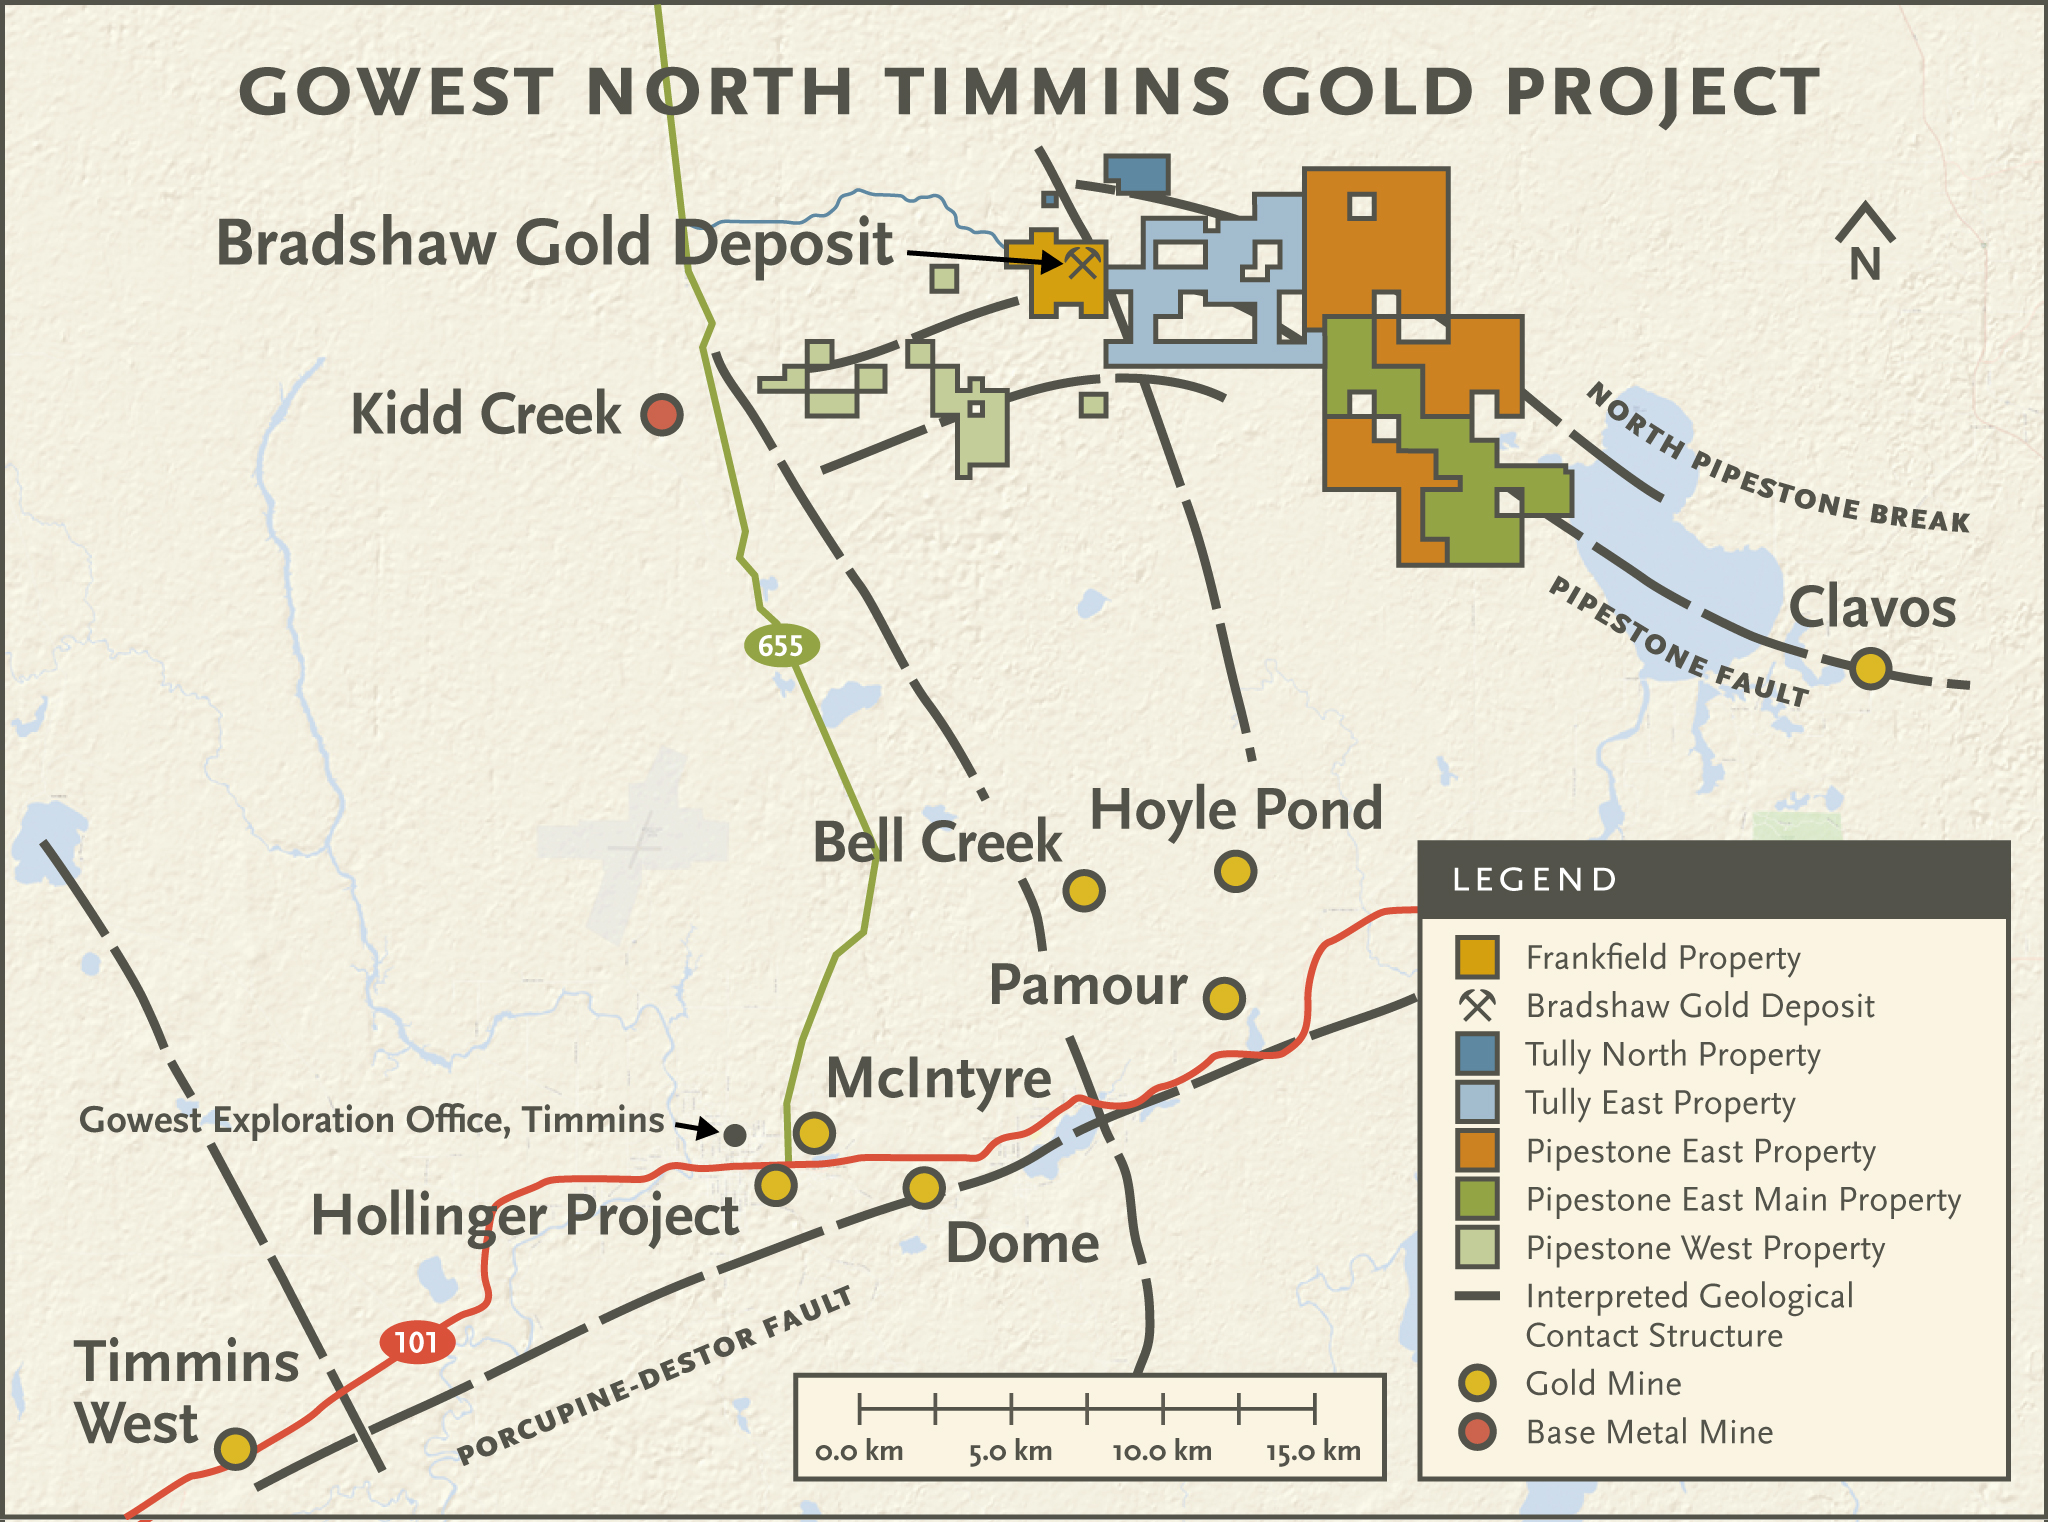 North Timmins Gold Project